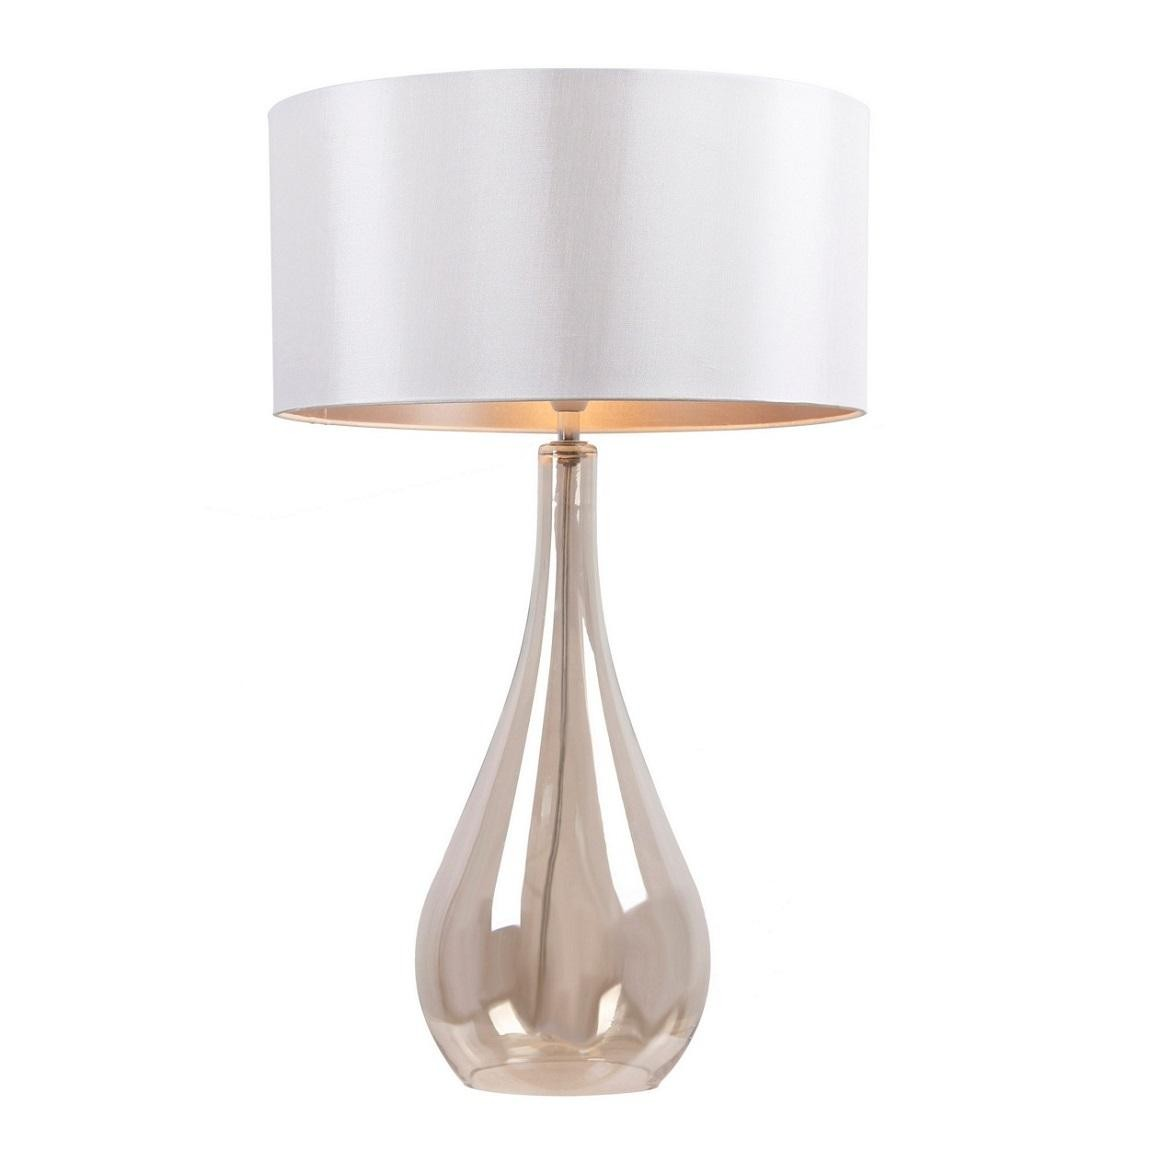 Tall Bedside Lamps Debenhams Home Collection 39claire 39 Tall Table Lamp Bedside